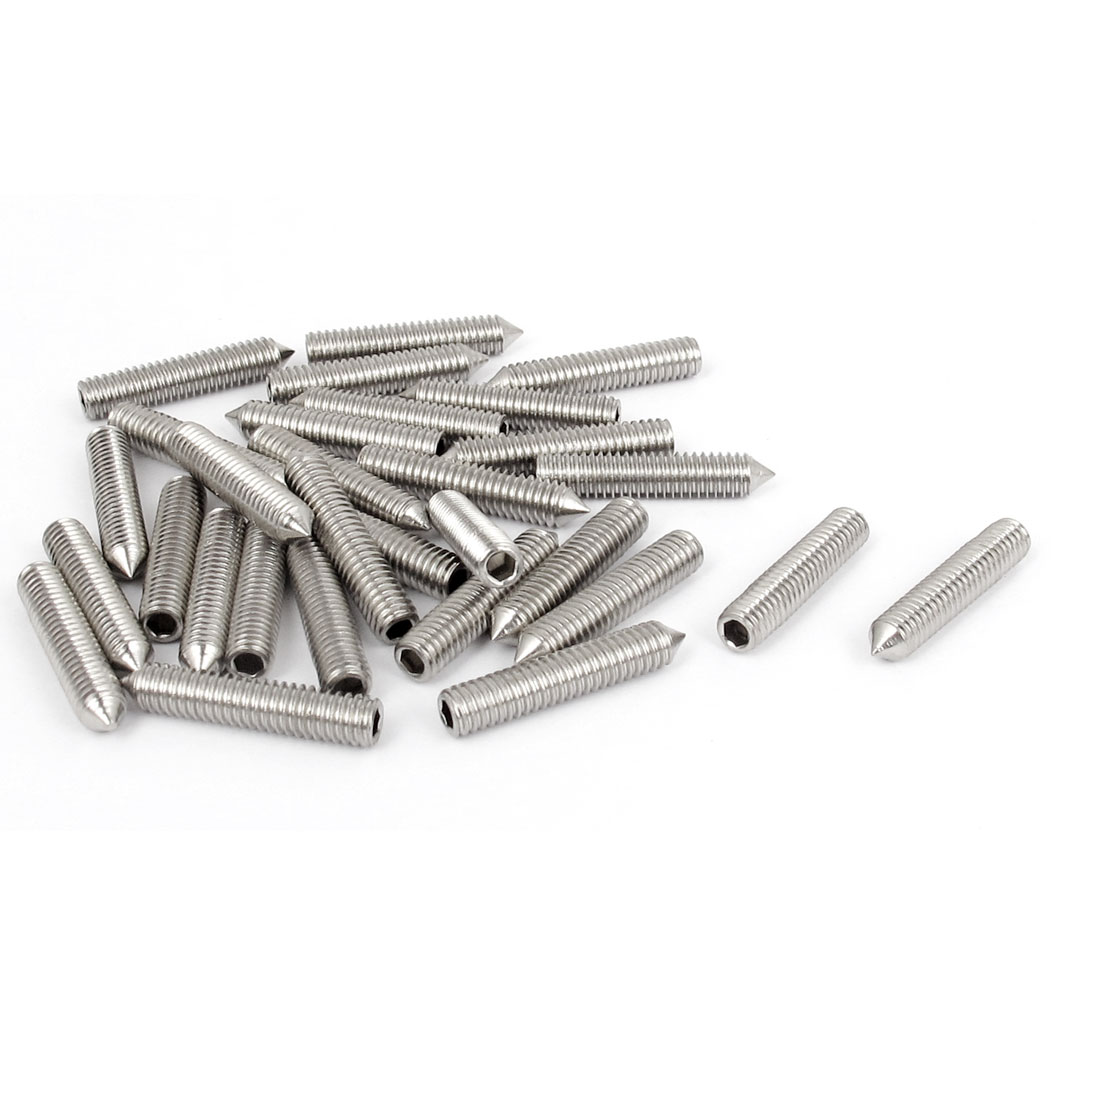 M4x20mm 304 Stainless Steel Cone Point Hexagon Socket Grub Screws 30pcs